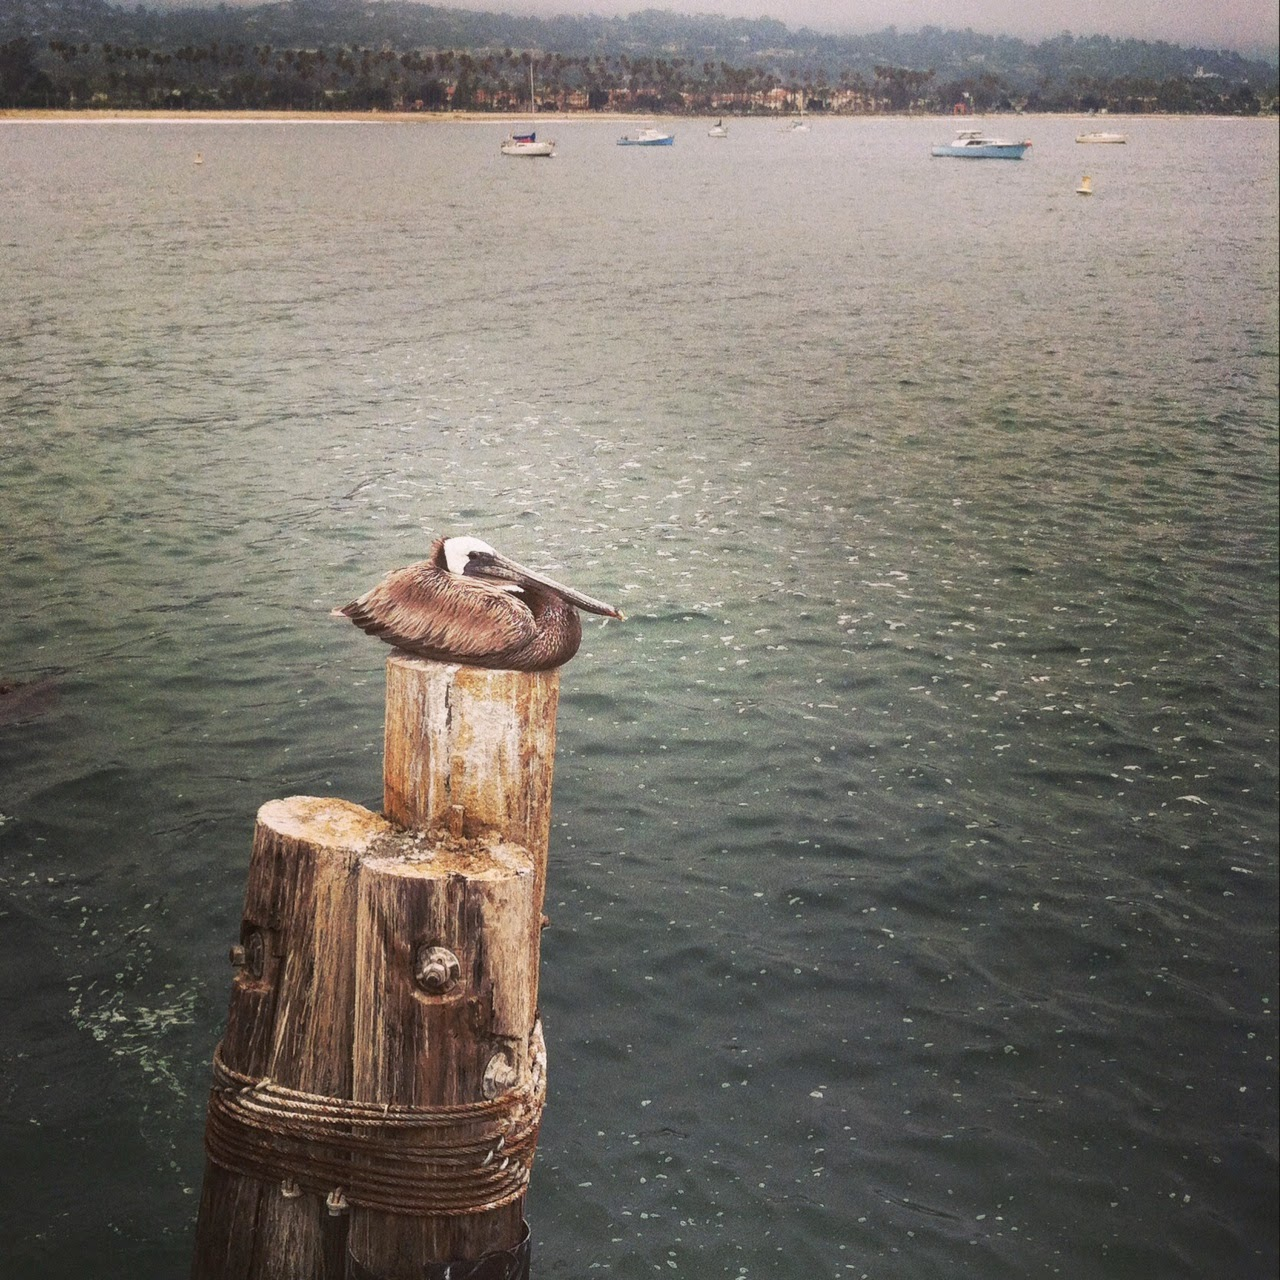 Favorite Places: Santa Barbara Pier